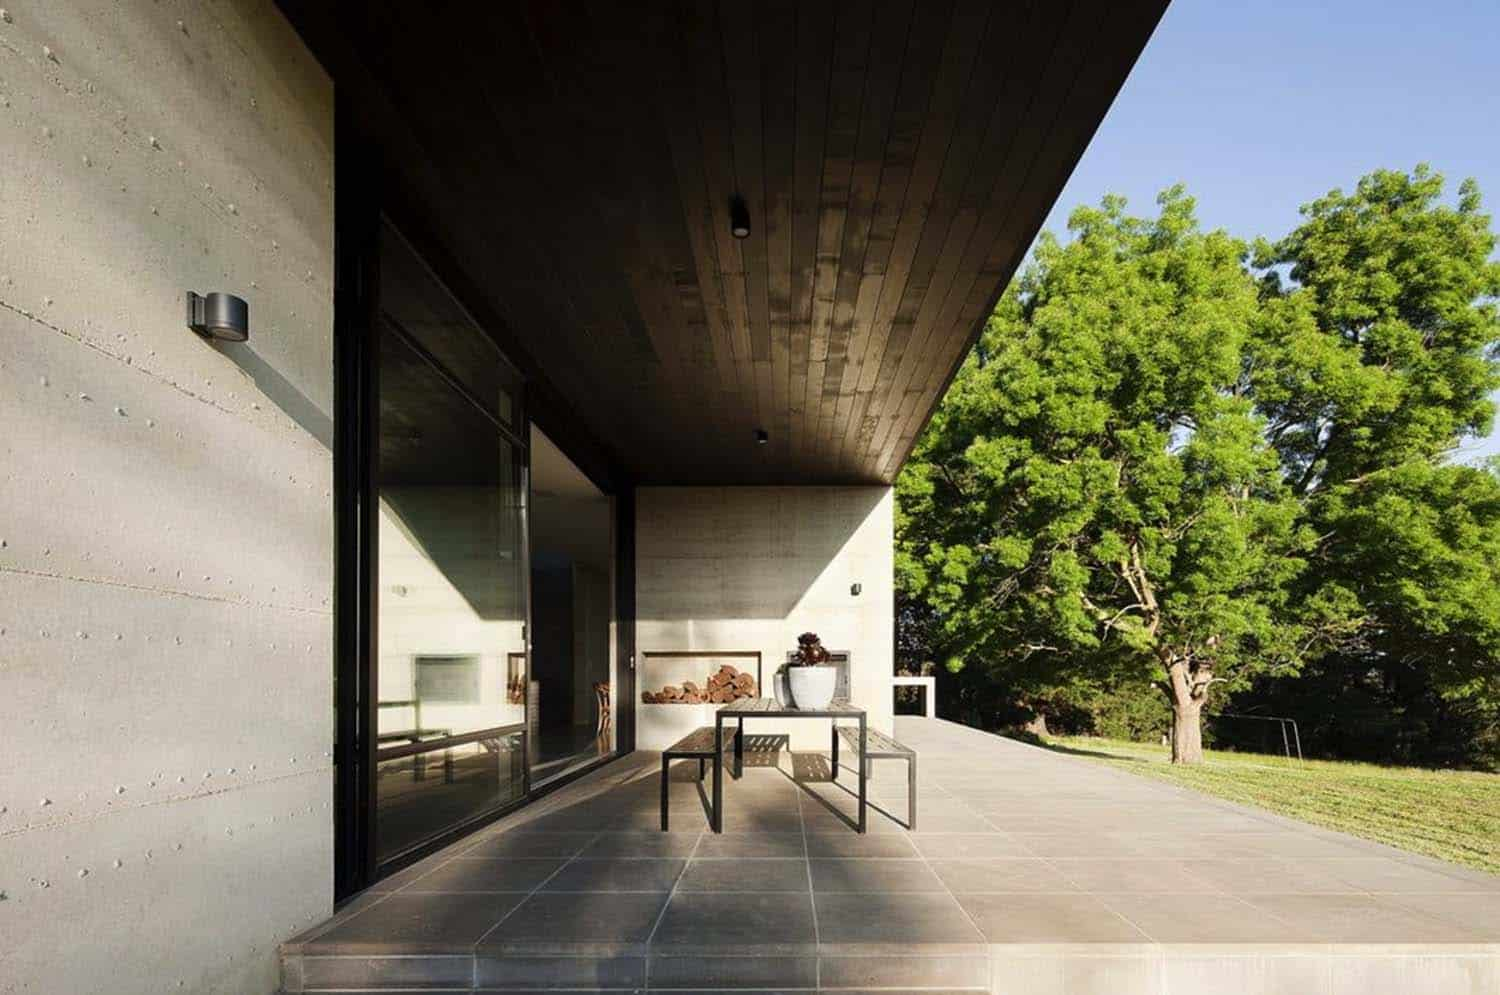 Rammed Earth House-Robson Rak Architects-21-1 Kindesign